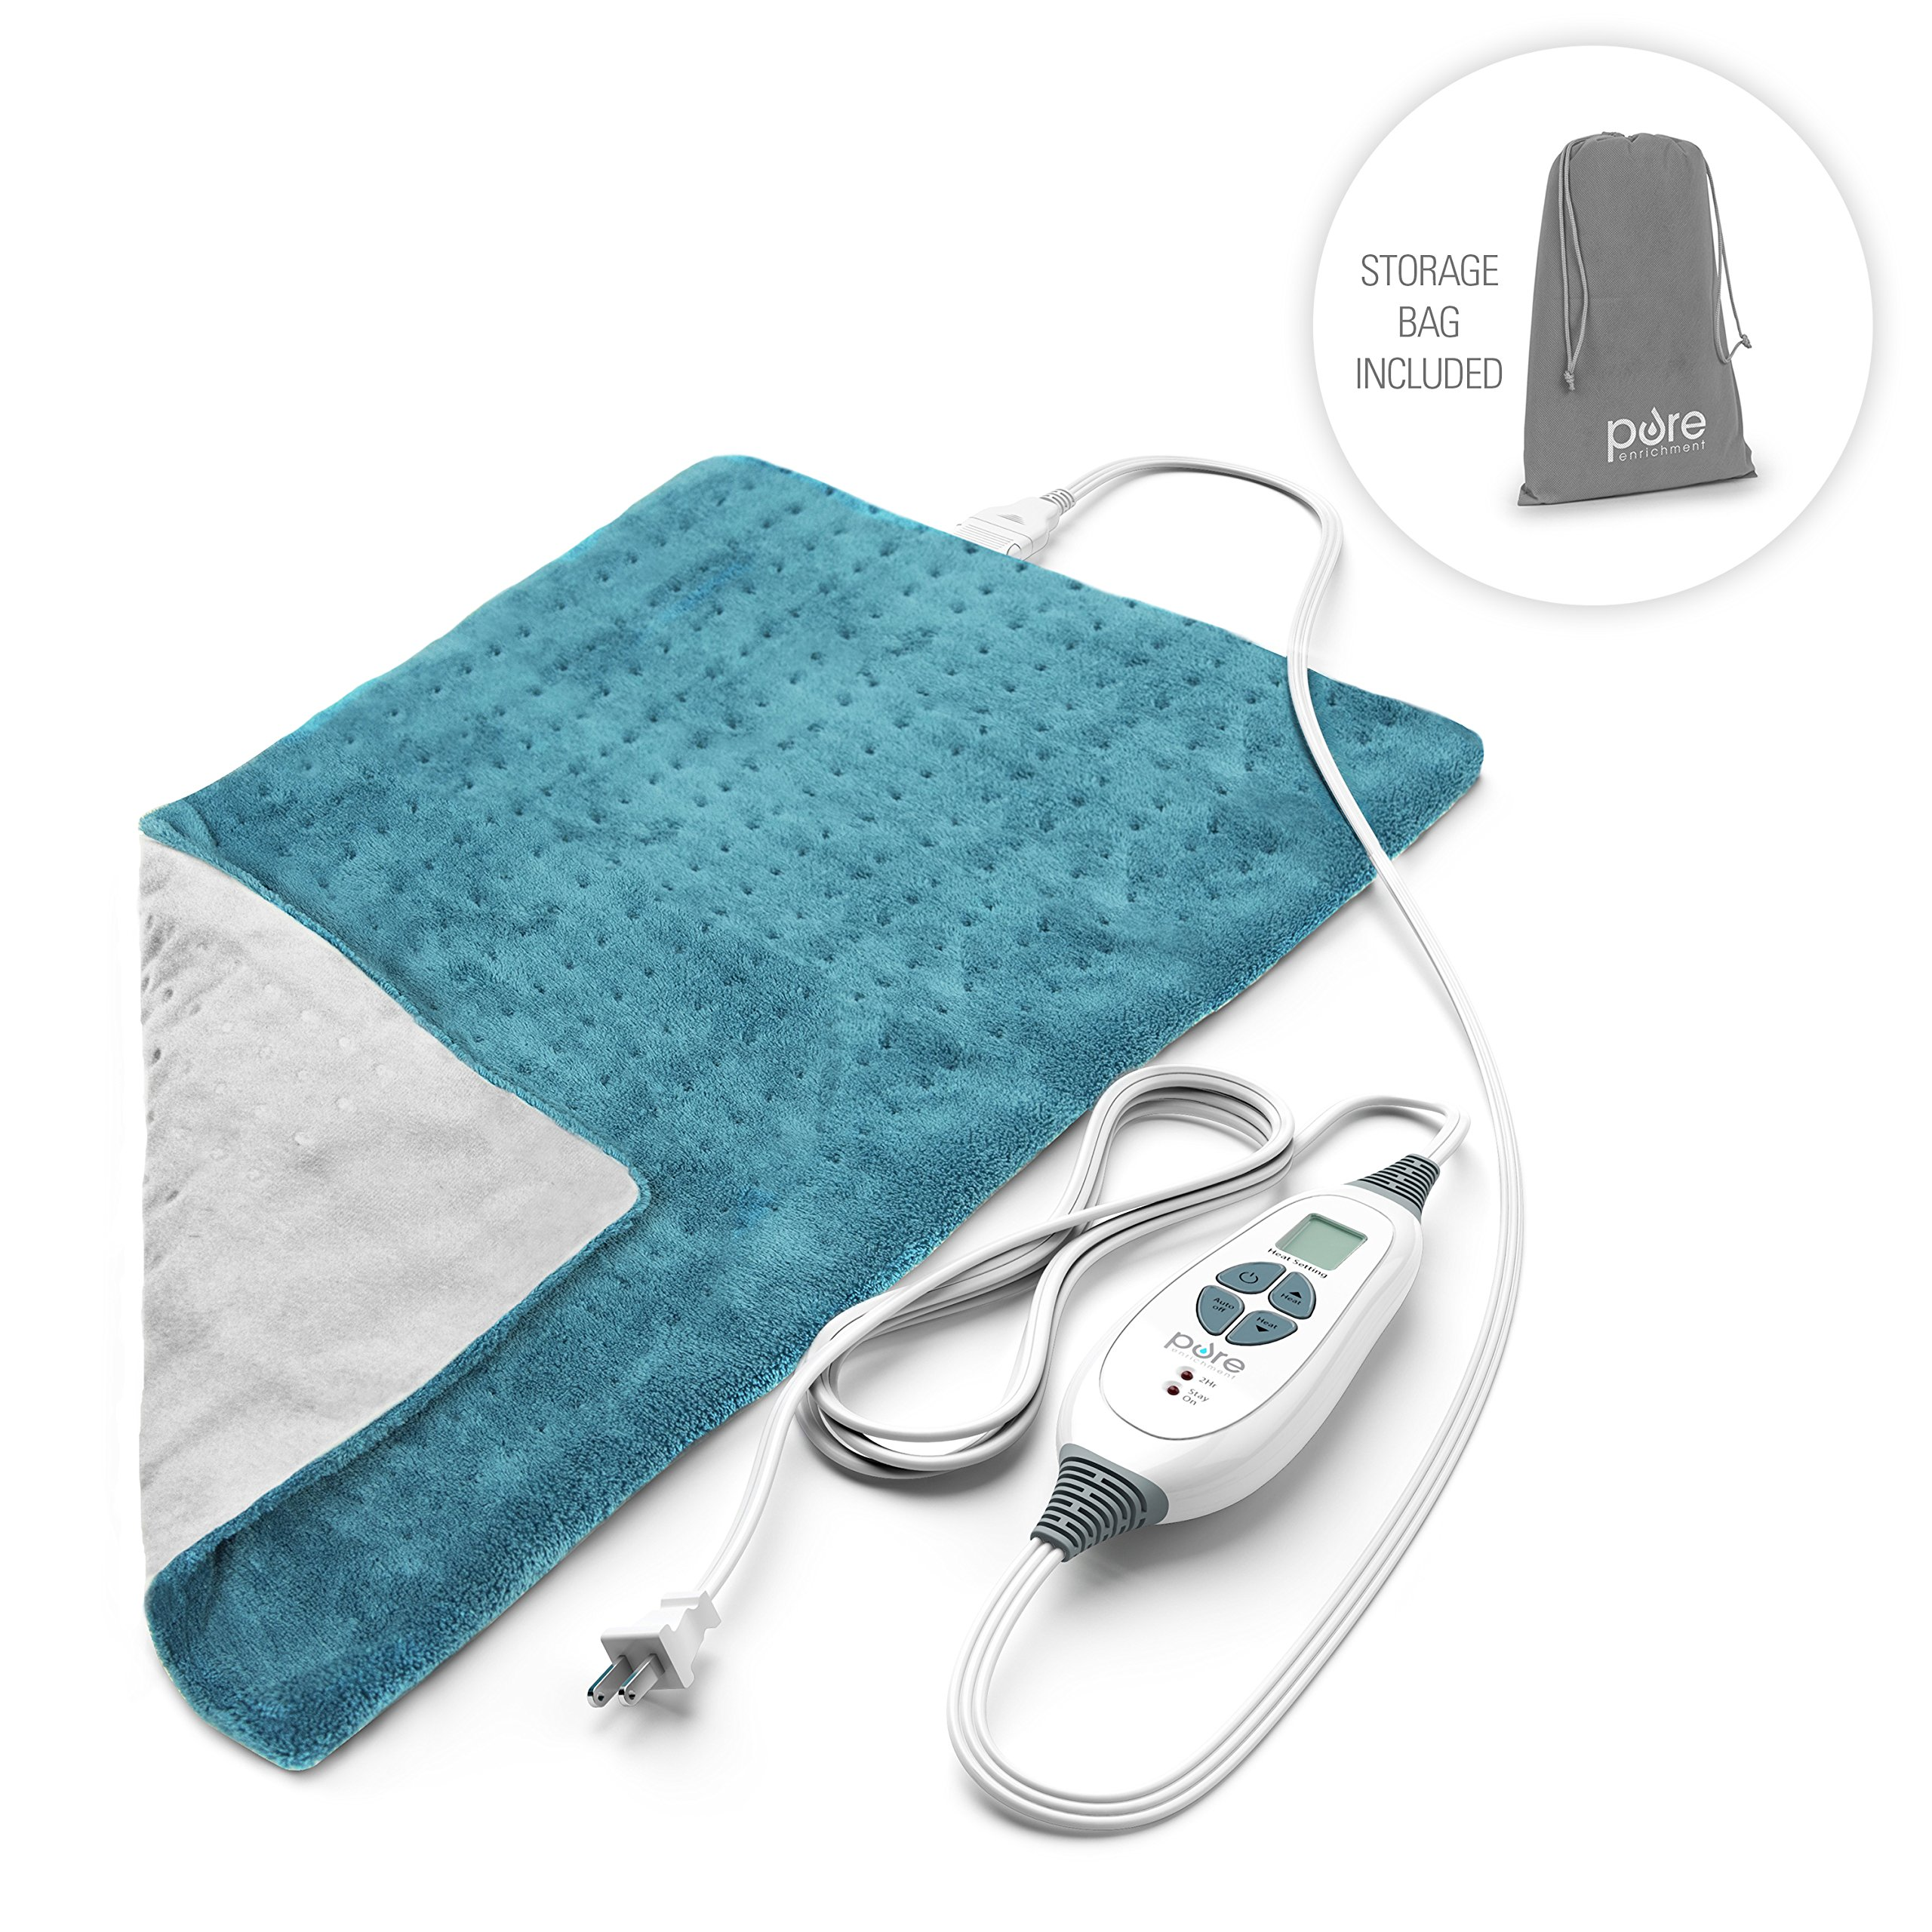 PureRelief XL – King Size Heating Pad with Fast-Heating Technology, 6 Temperature Settings, Convenient Storage Bag – Turquoise Blue (12'' x 24'')